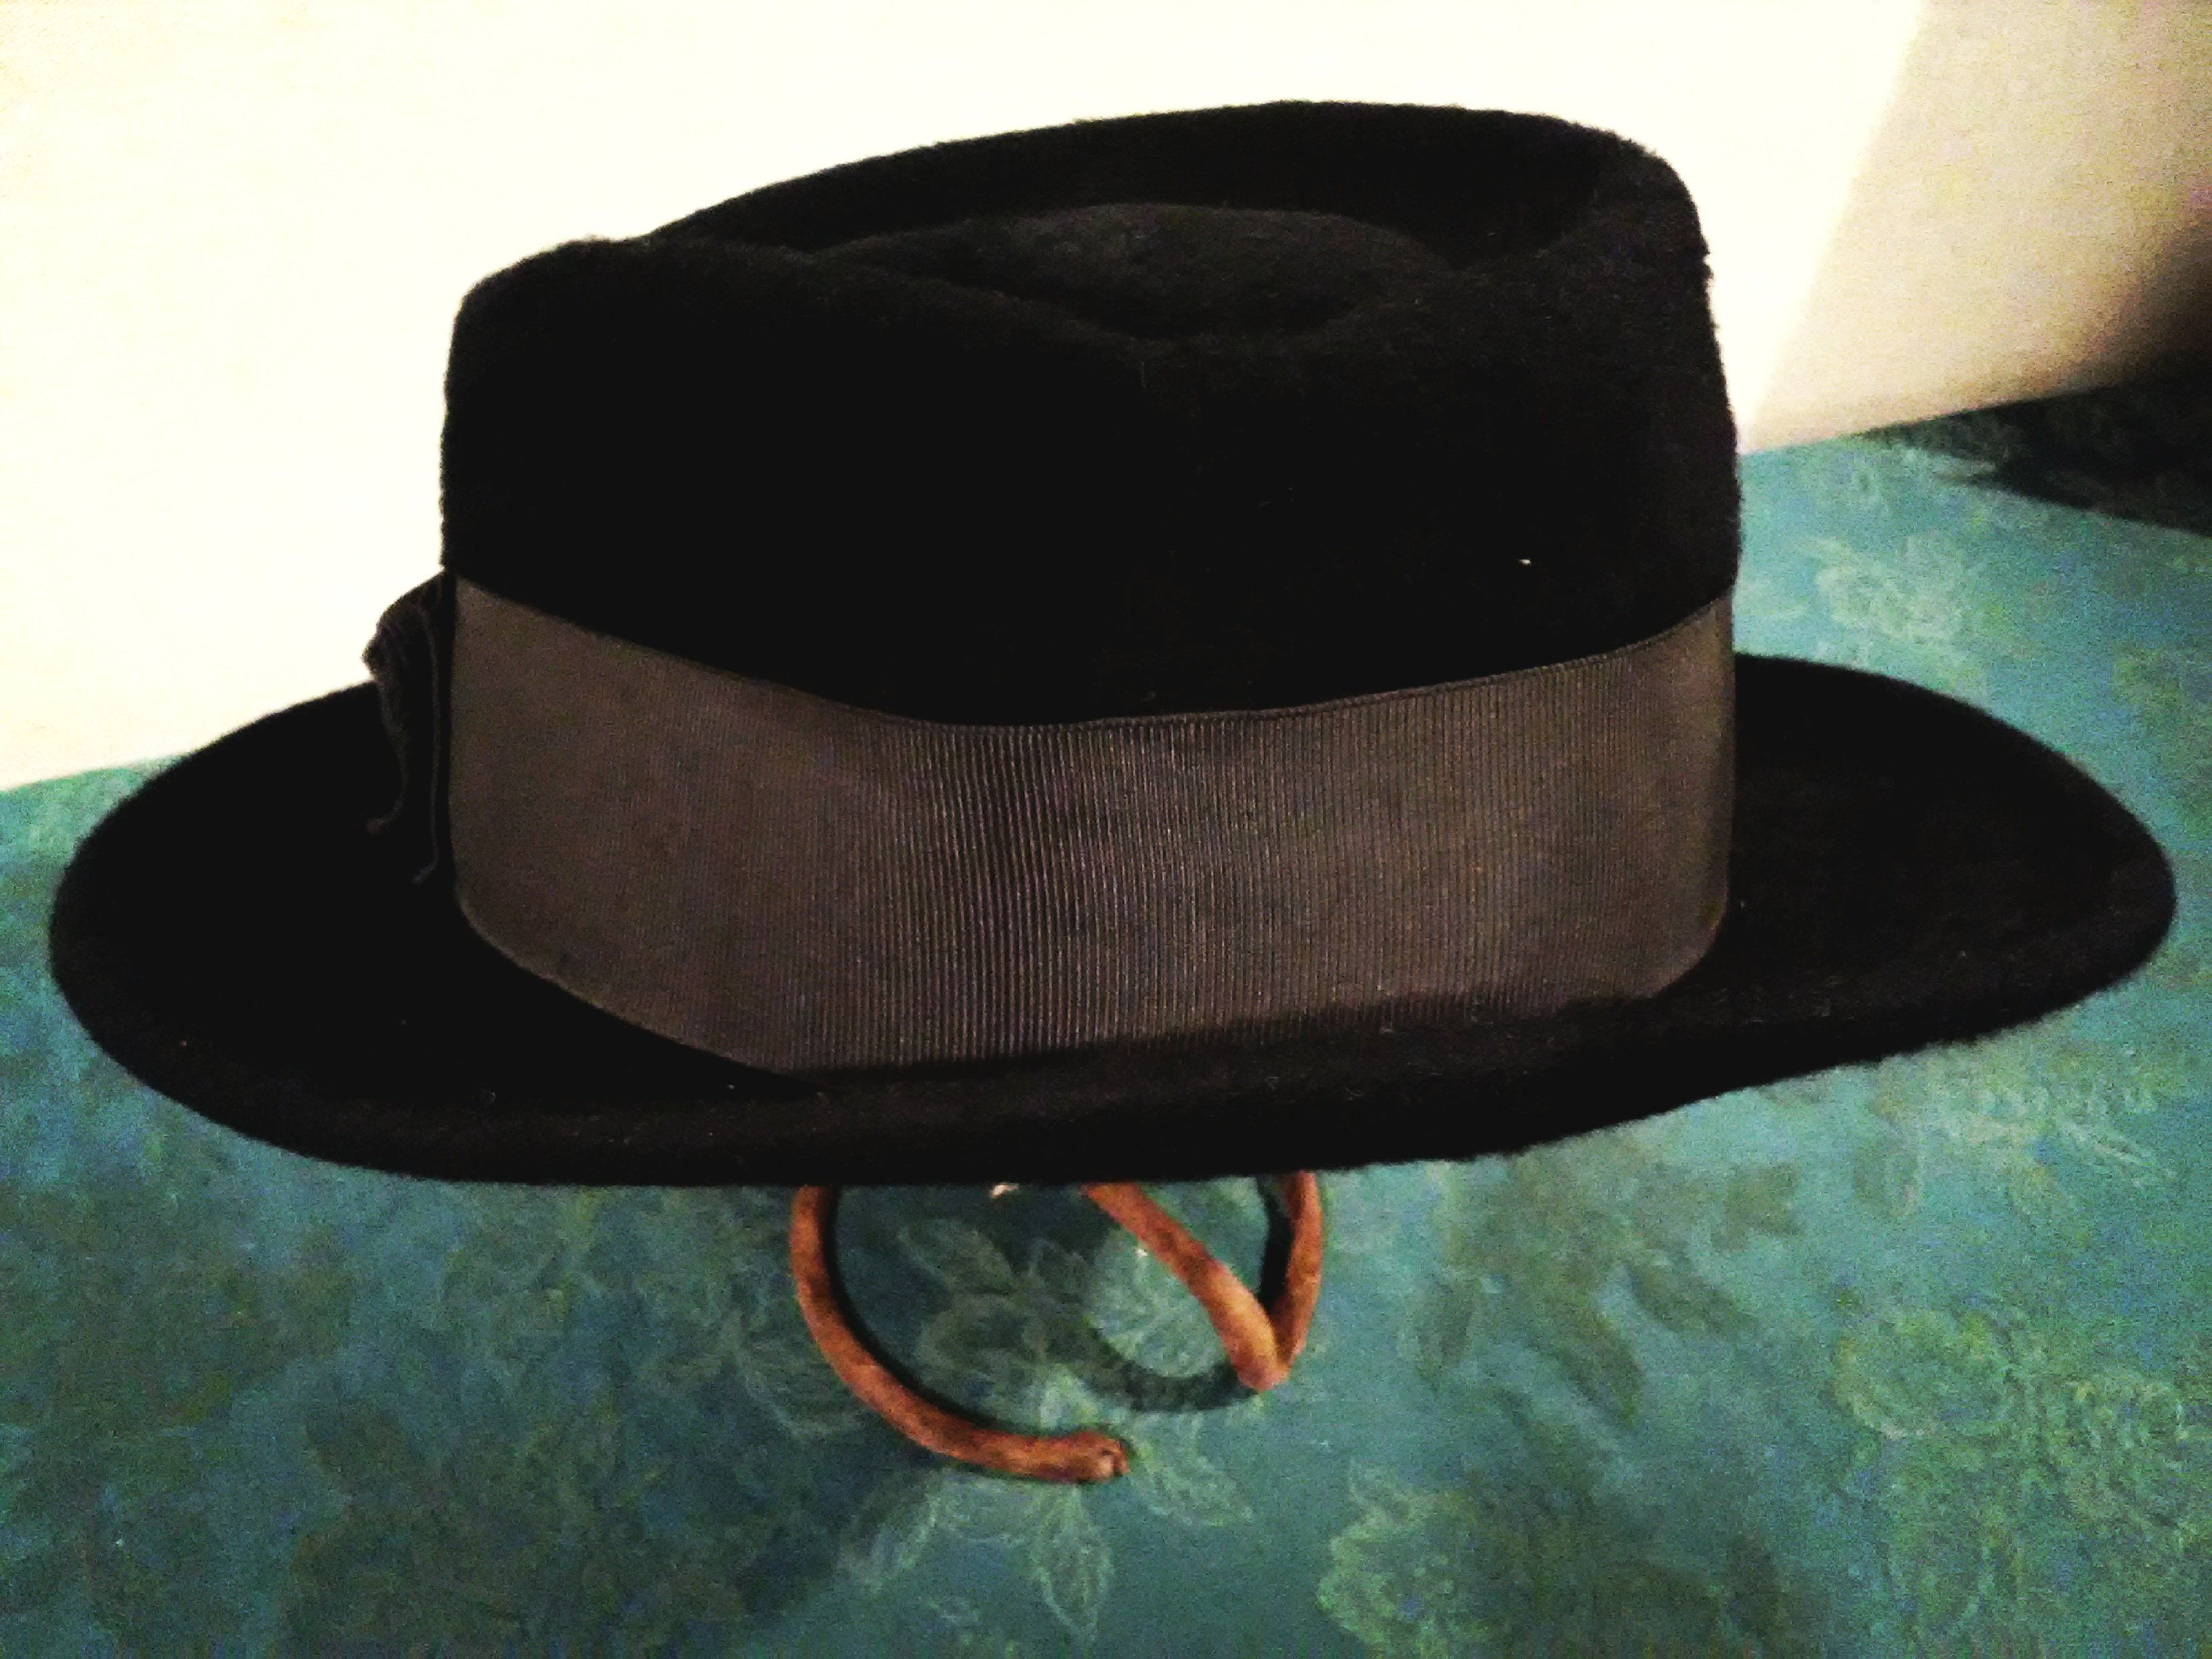 Another image of the hat sold by the Deutsch store and formerly owned by Dr. Powers.